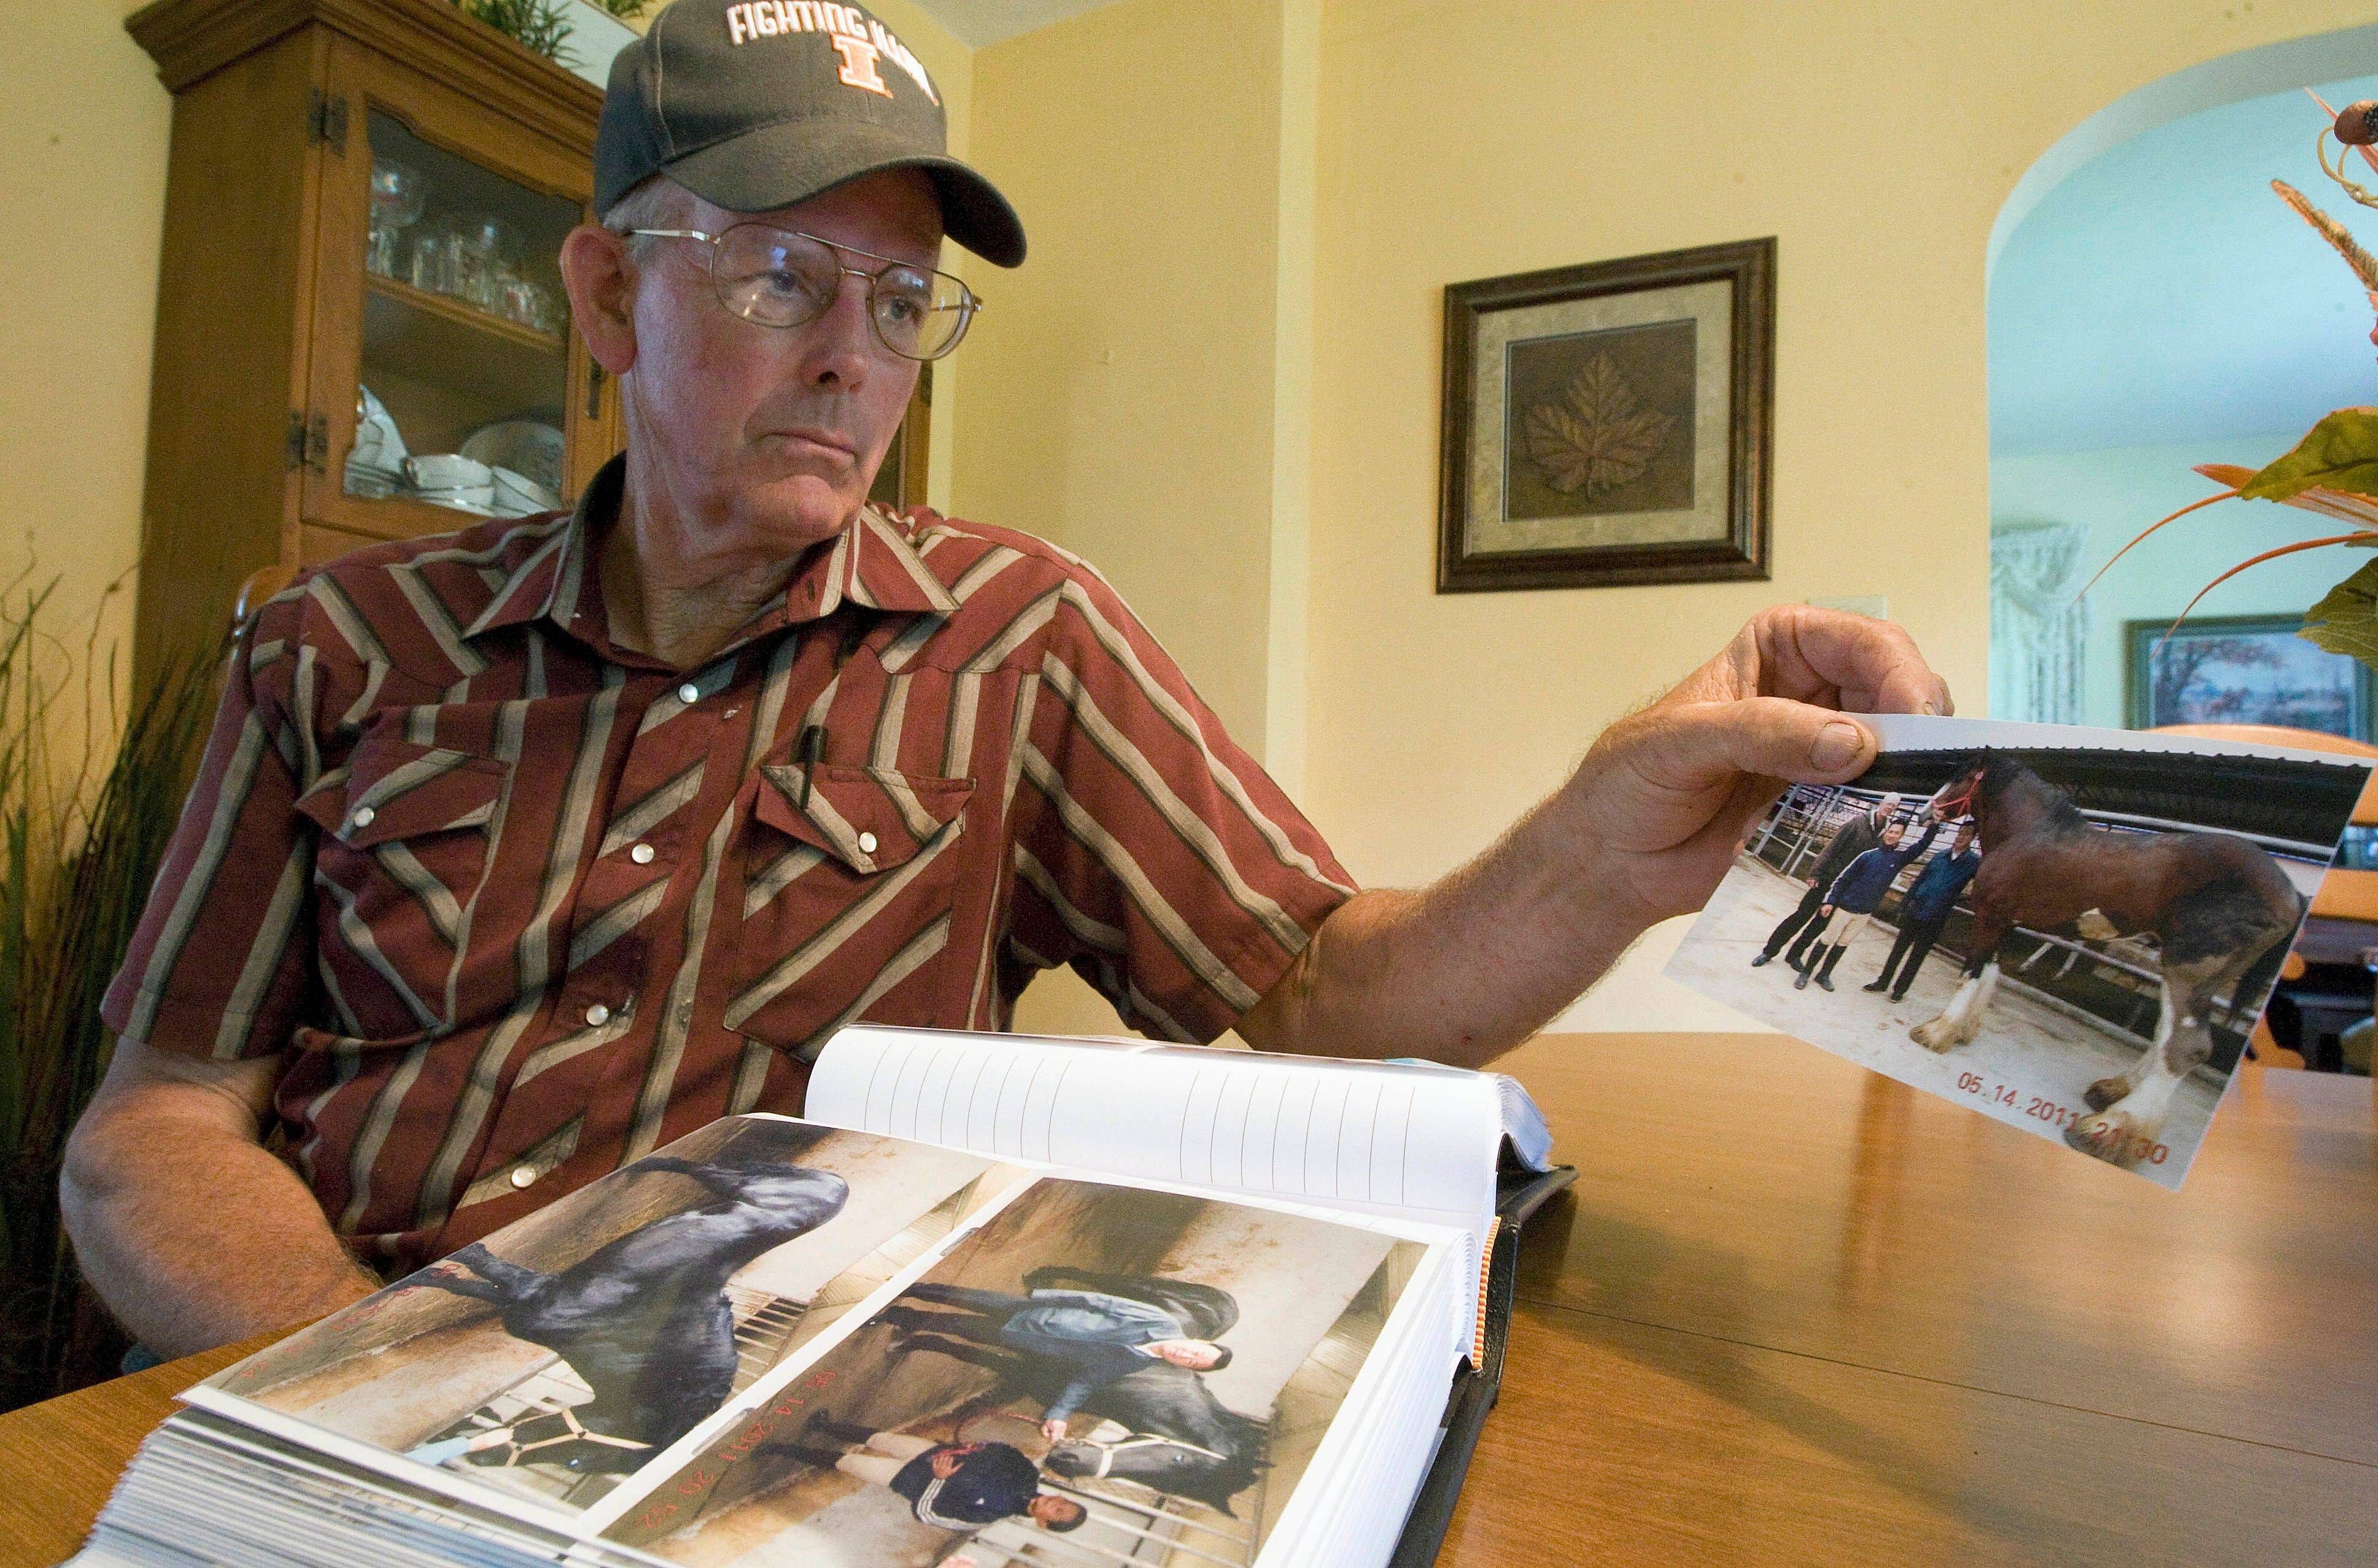 Phil Farrell of rural Lovington, Ill., looks through his pictures from China, where he delivered had several varieties of horses, including Clydesdales, to a Chinese businessman.